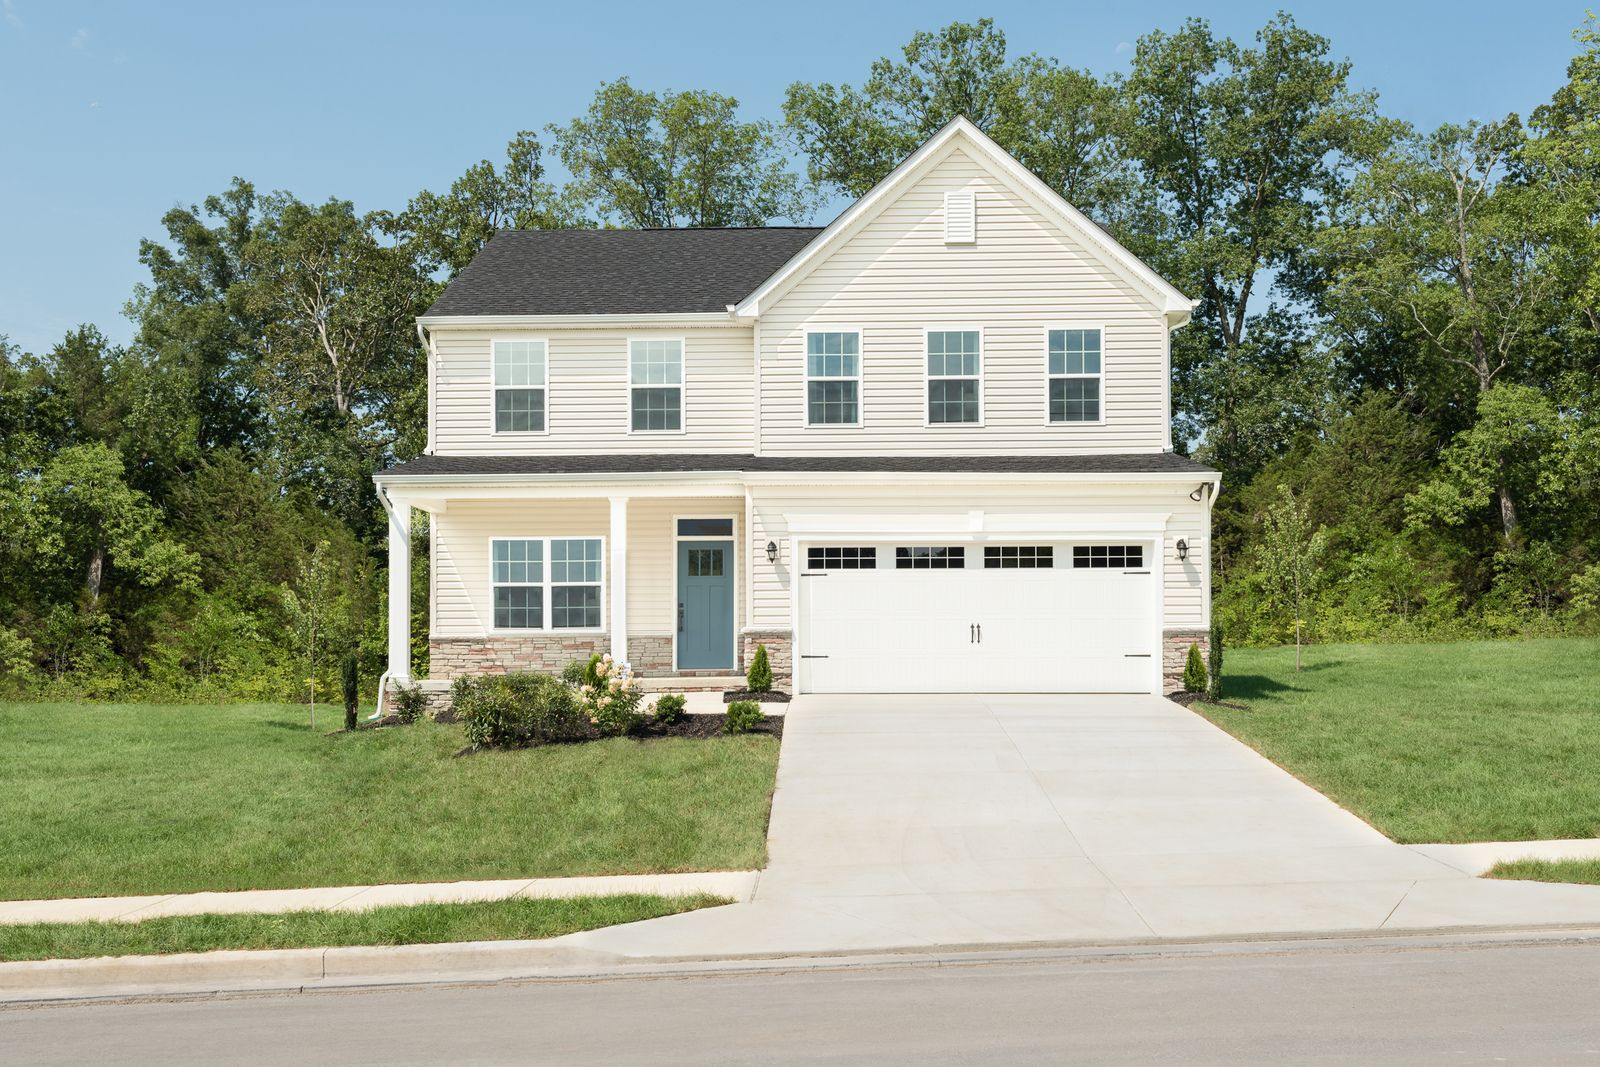 Welcome to Ovations:Offering the lowest price for a new home with a finished basement in the Smyrna area.